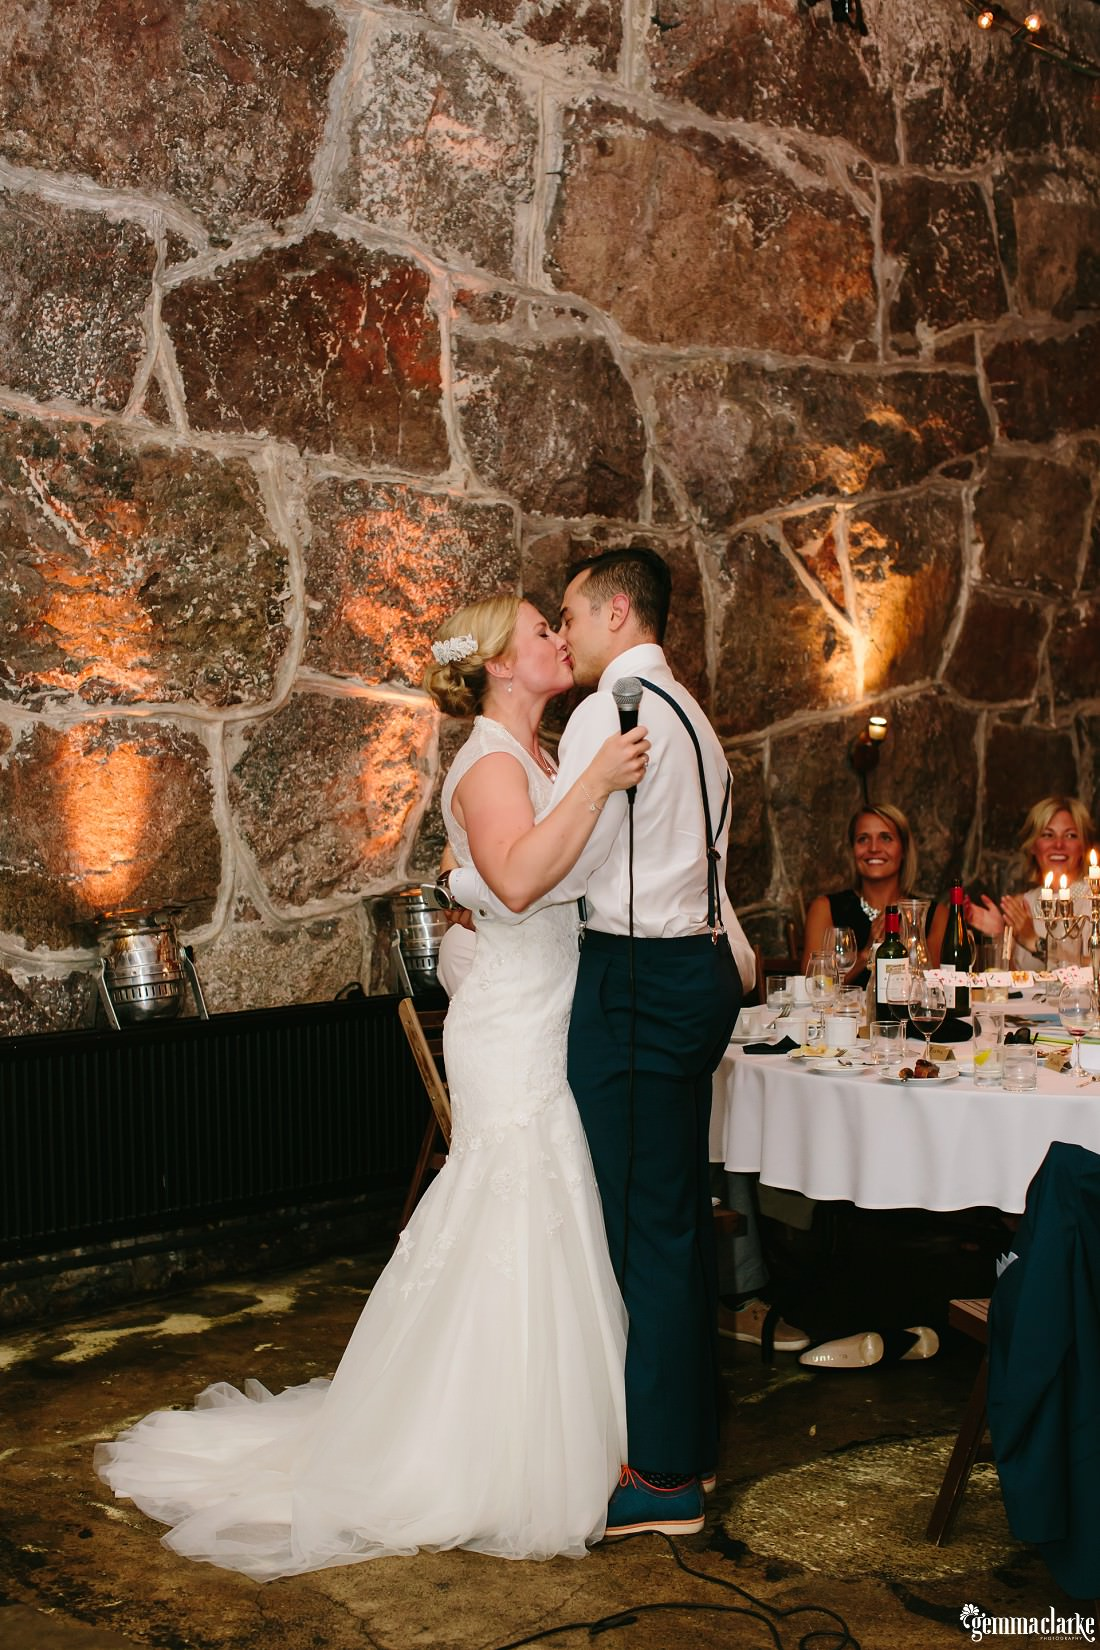 A groom kisses his bride at their wedding reception